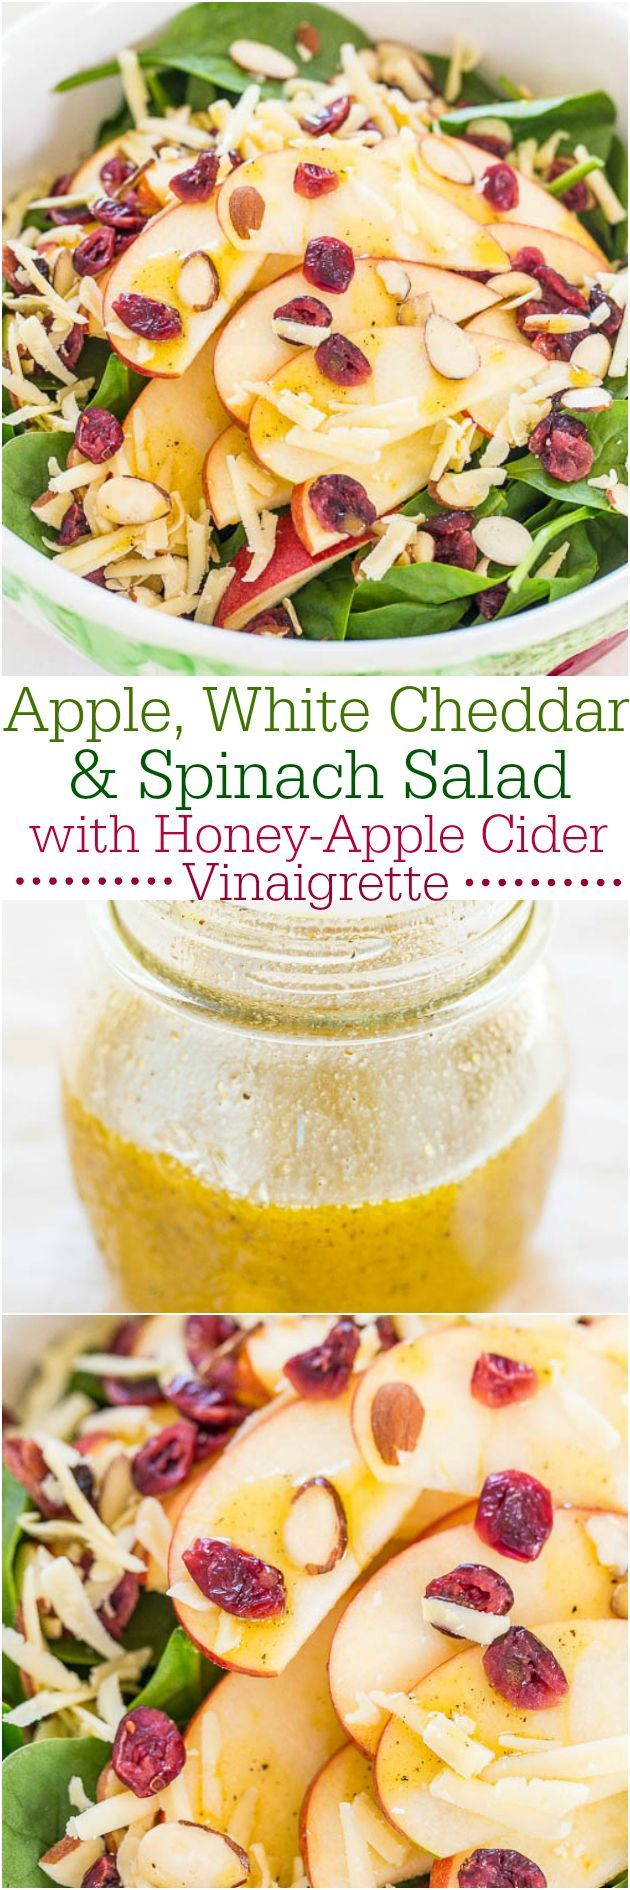 Apple, White Cheddar, and Spinach Salad with Honey-Apple Cider Vinaigrette - The flavors just POP in this fast, easy, and healthy salad!